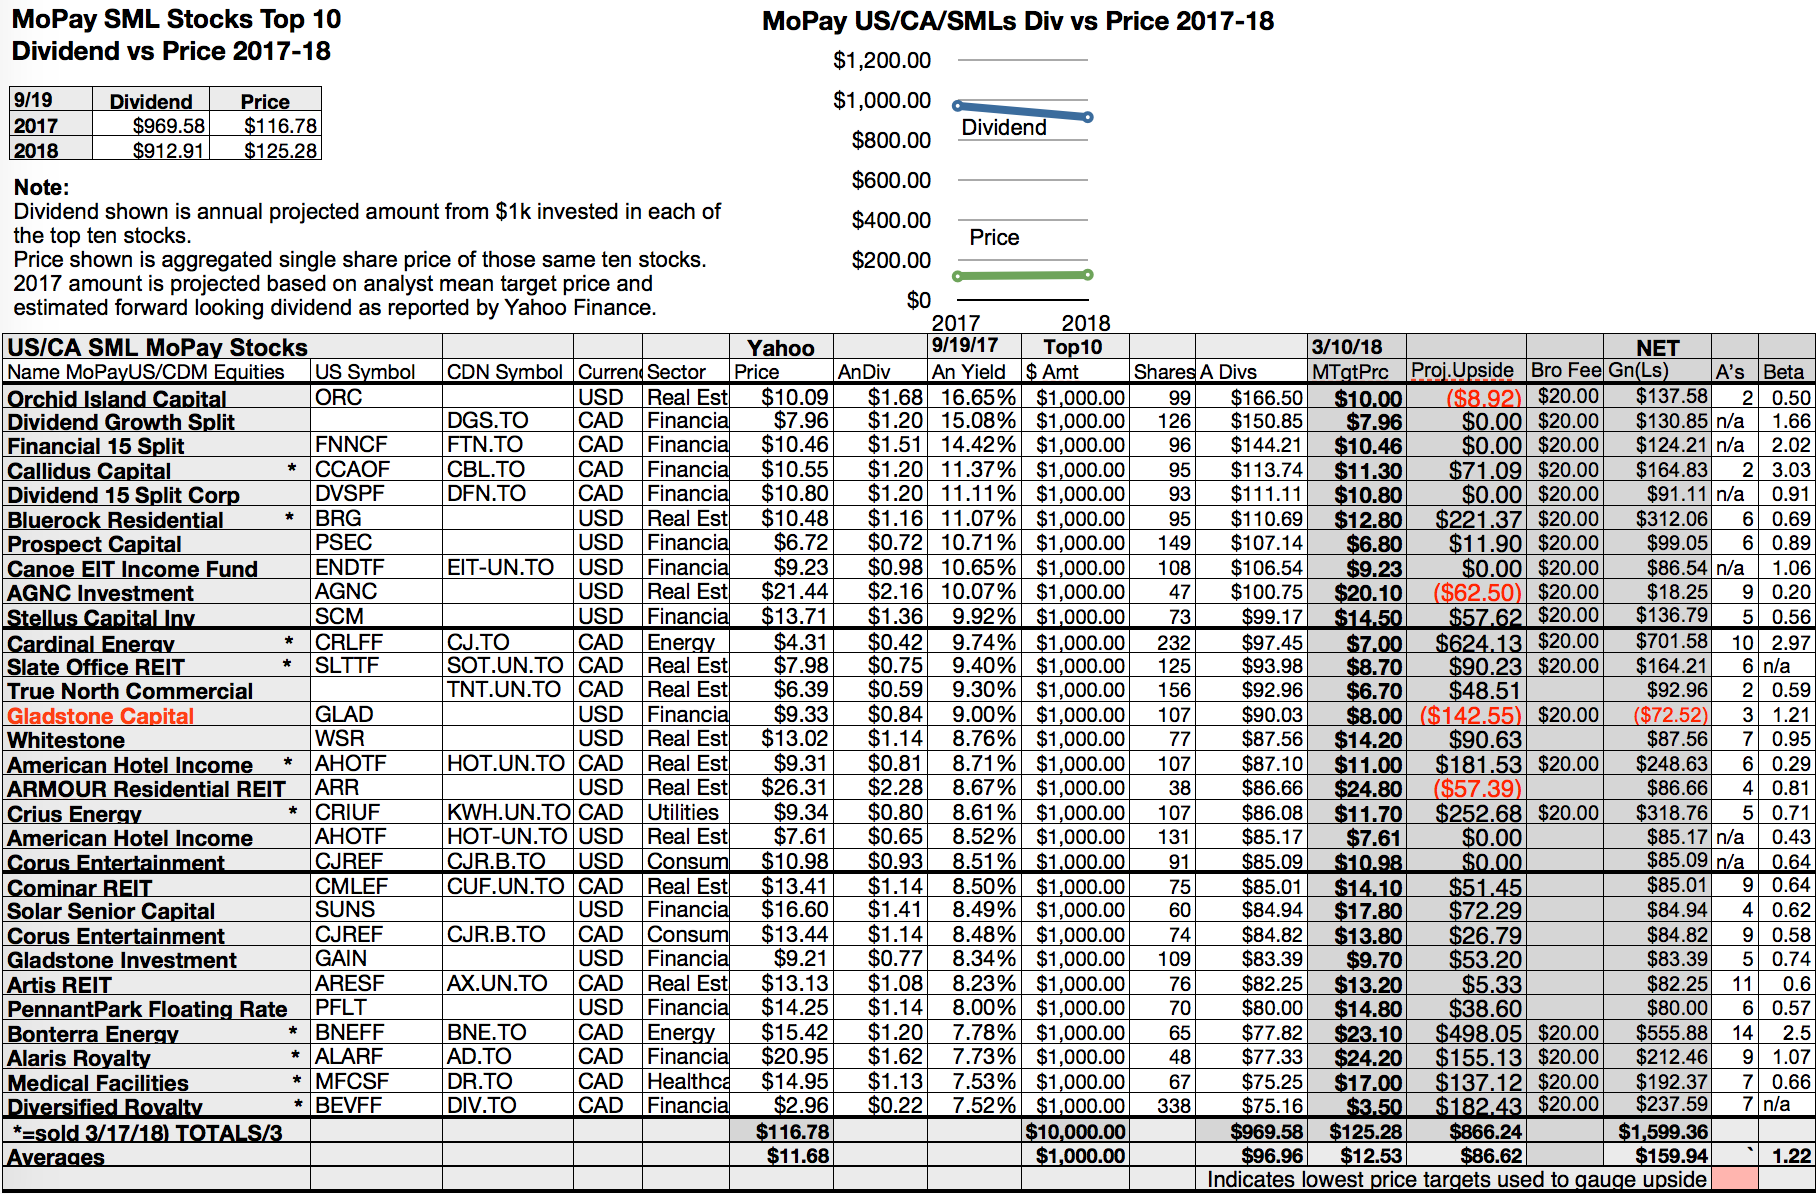 Top 50 Monthly Paid Dividend Yields Range 6.7%-16.7% For U.S. & CDN Mid-September Equities